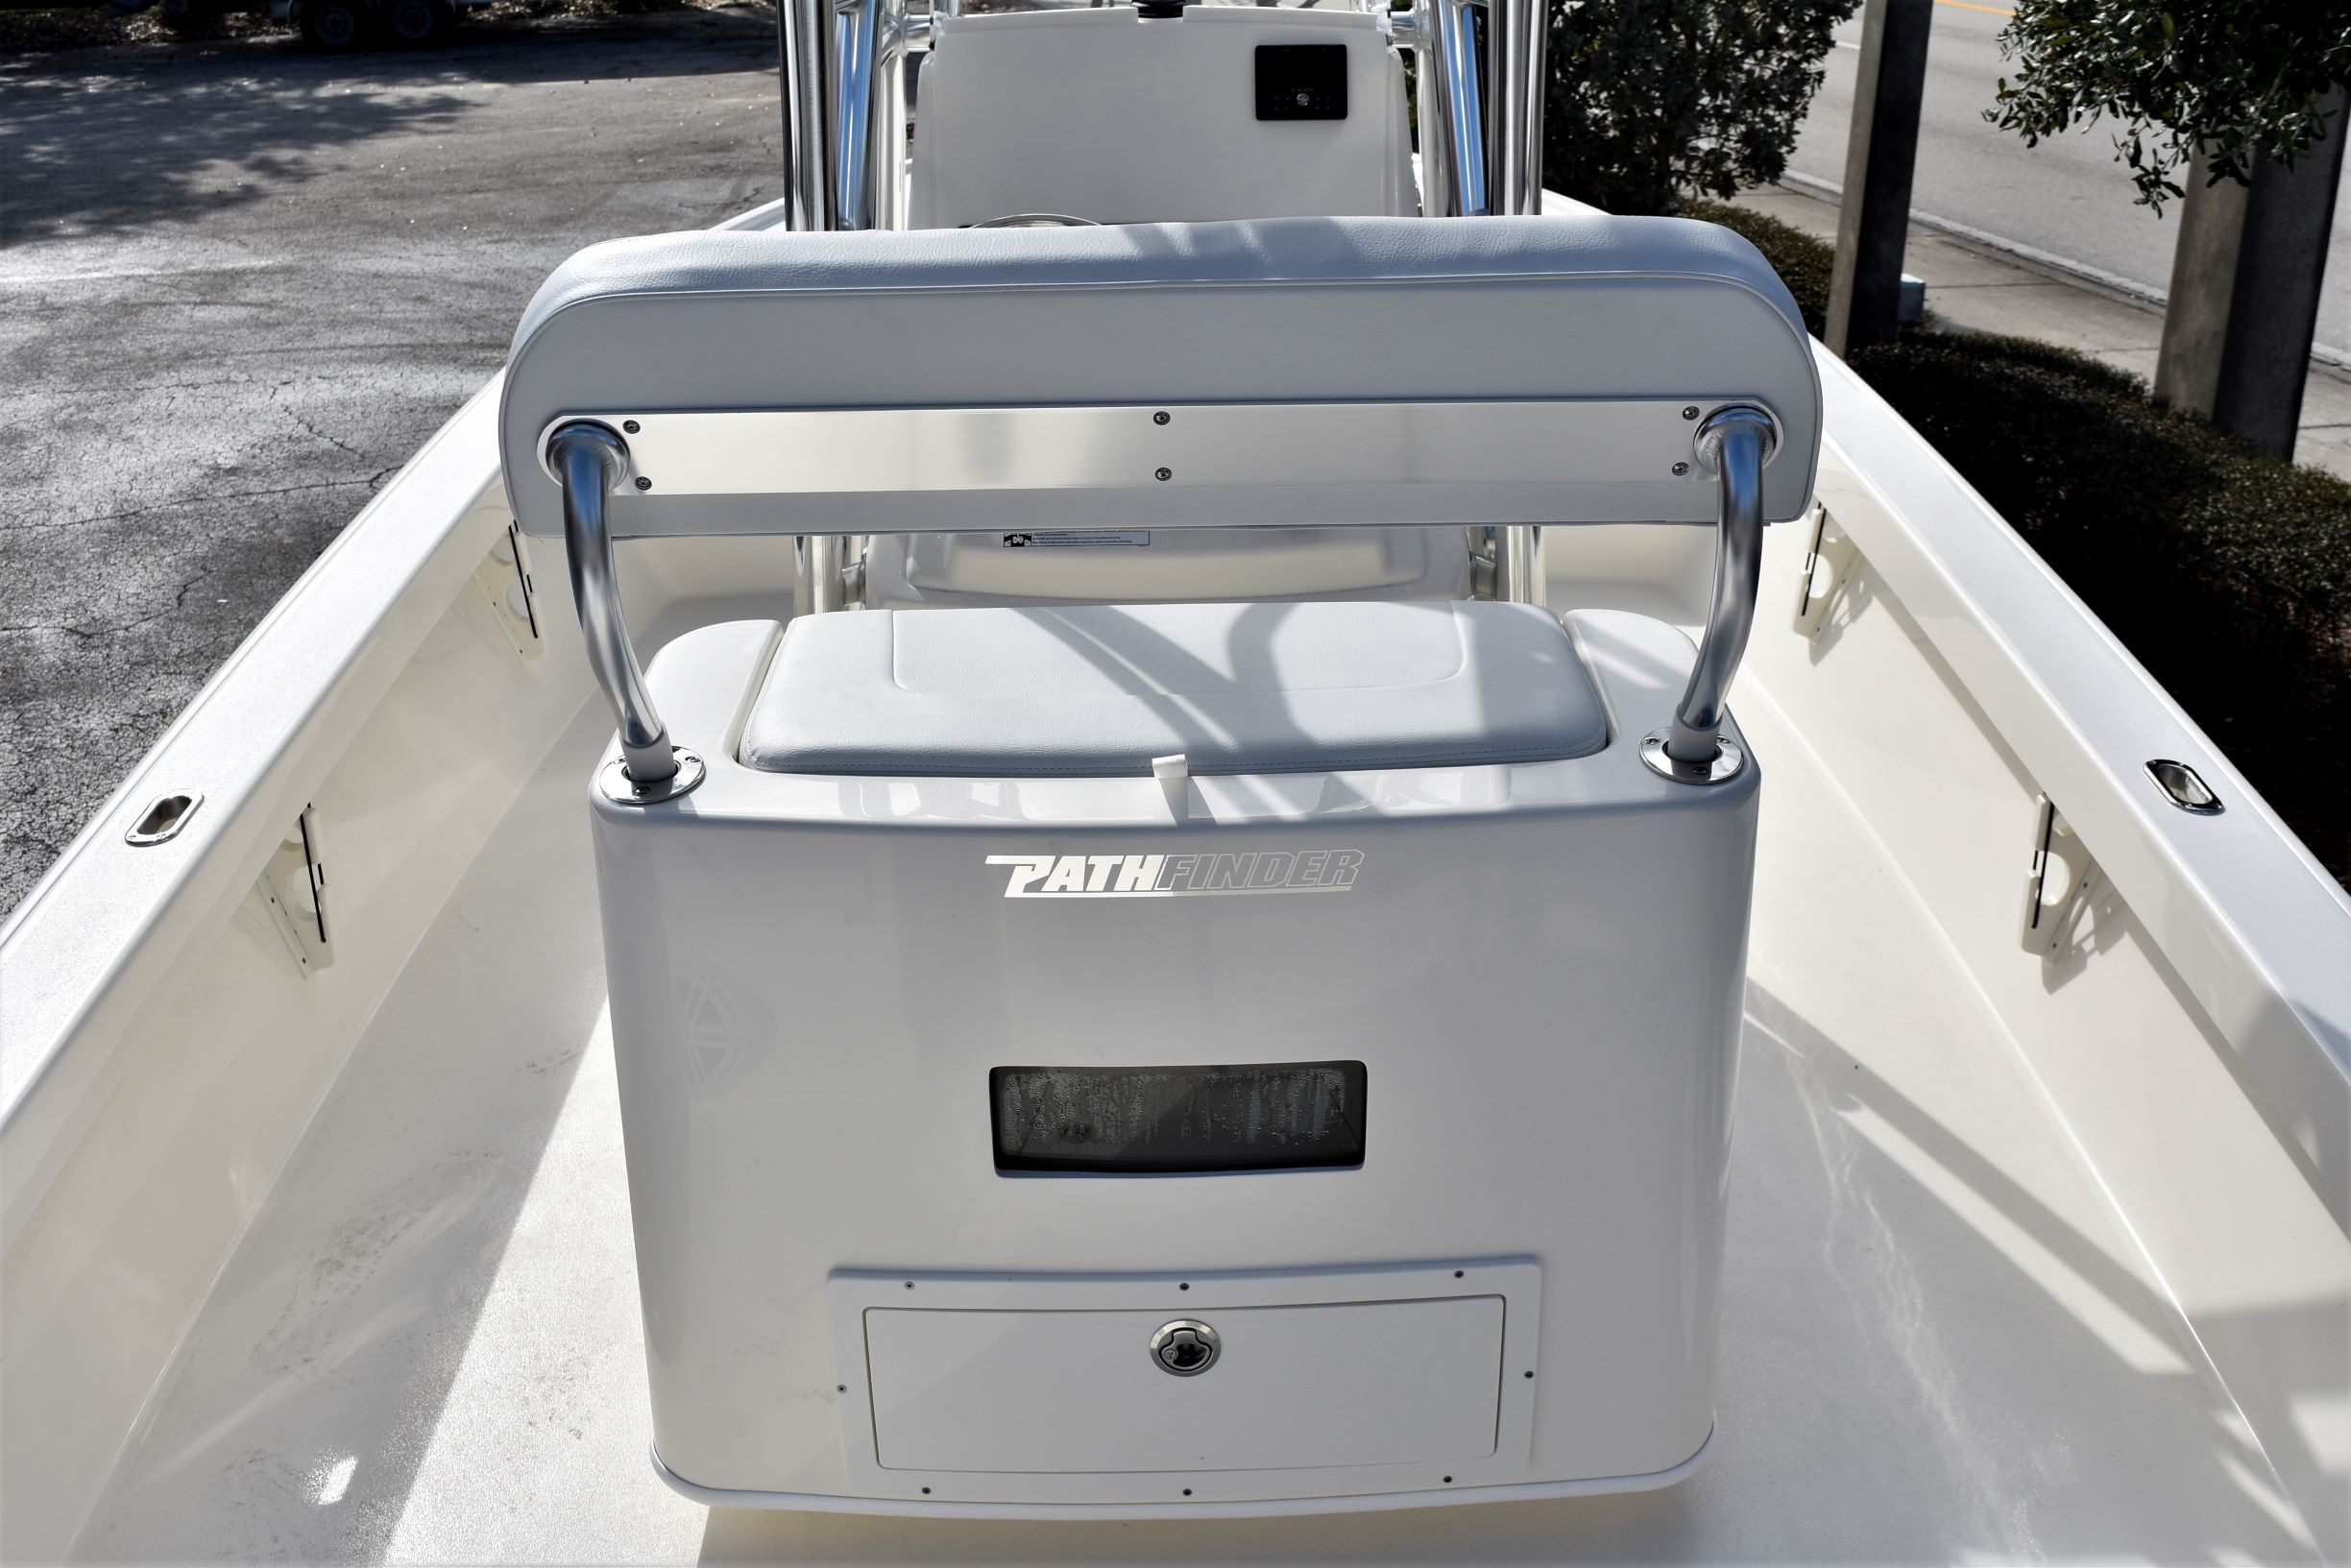 Thumbnail 11 for New 2020 Pathfinder 2500 Hybrid Bay Boat boat for sale in Vero Beach, FL